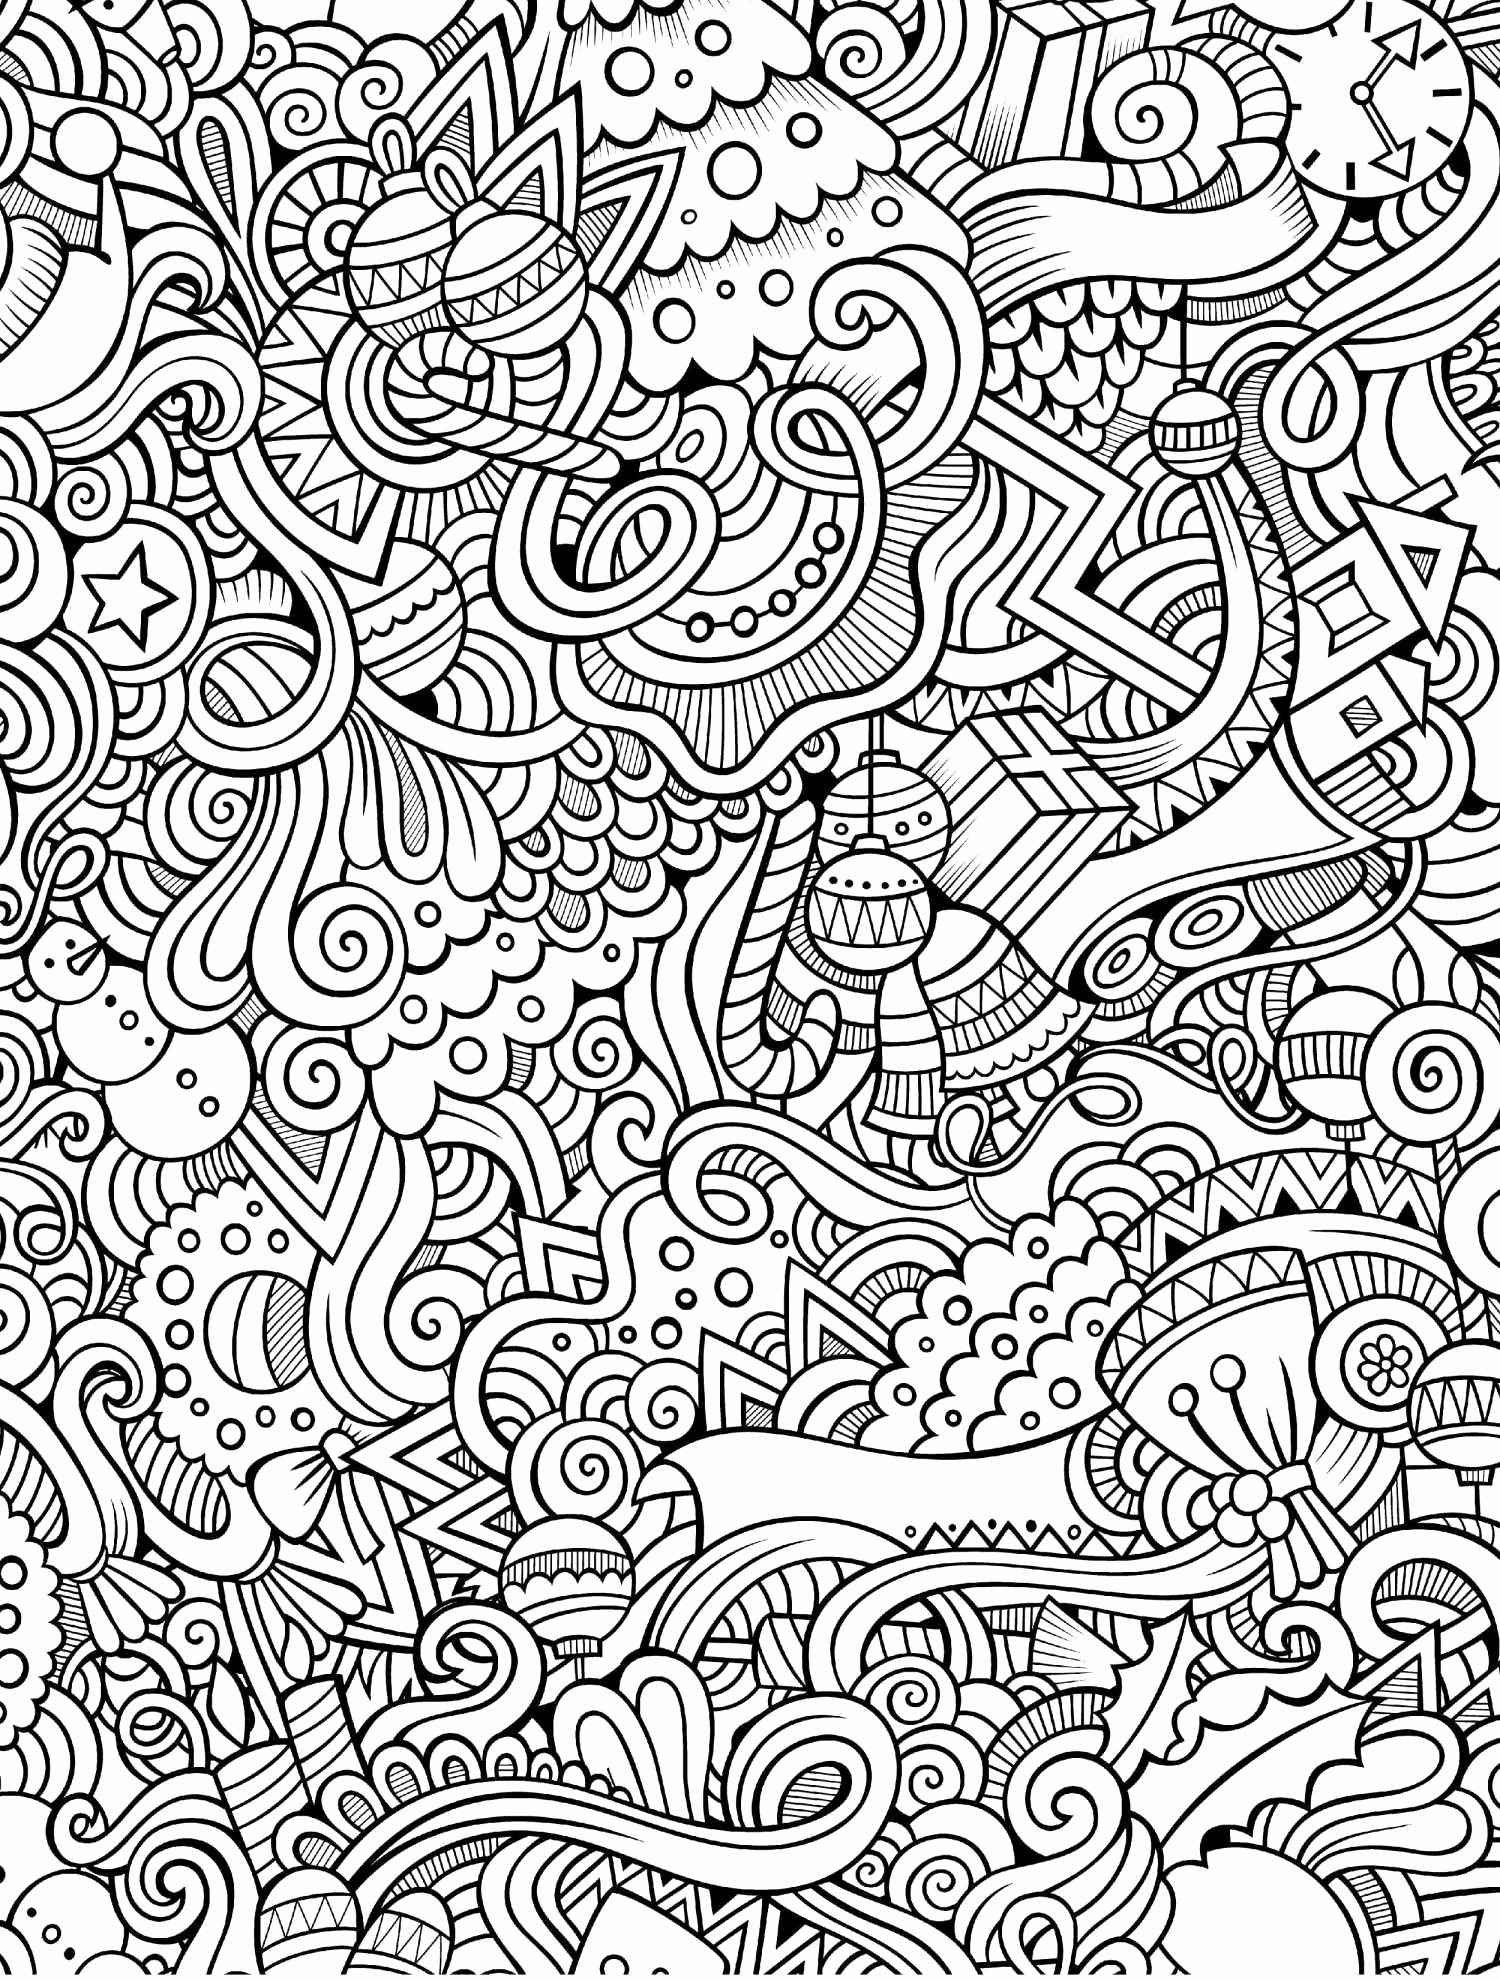 Coloring Pages : Free Printable Coloring Books Pdf Liberty Kids - Free Printable Coloring Books Pdf